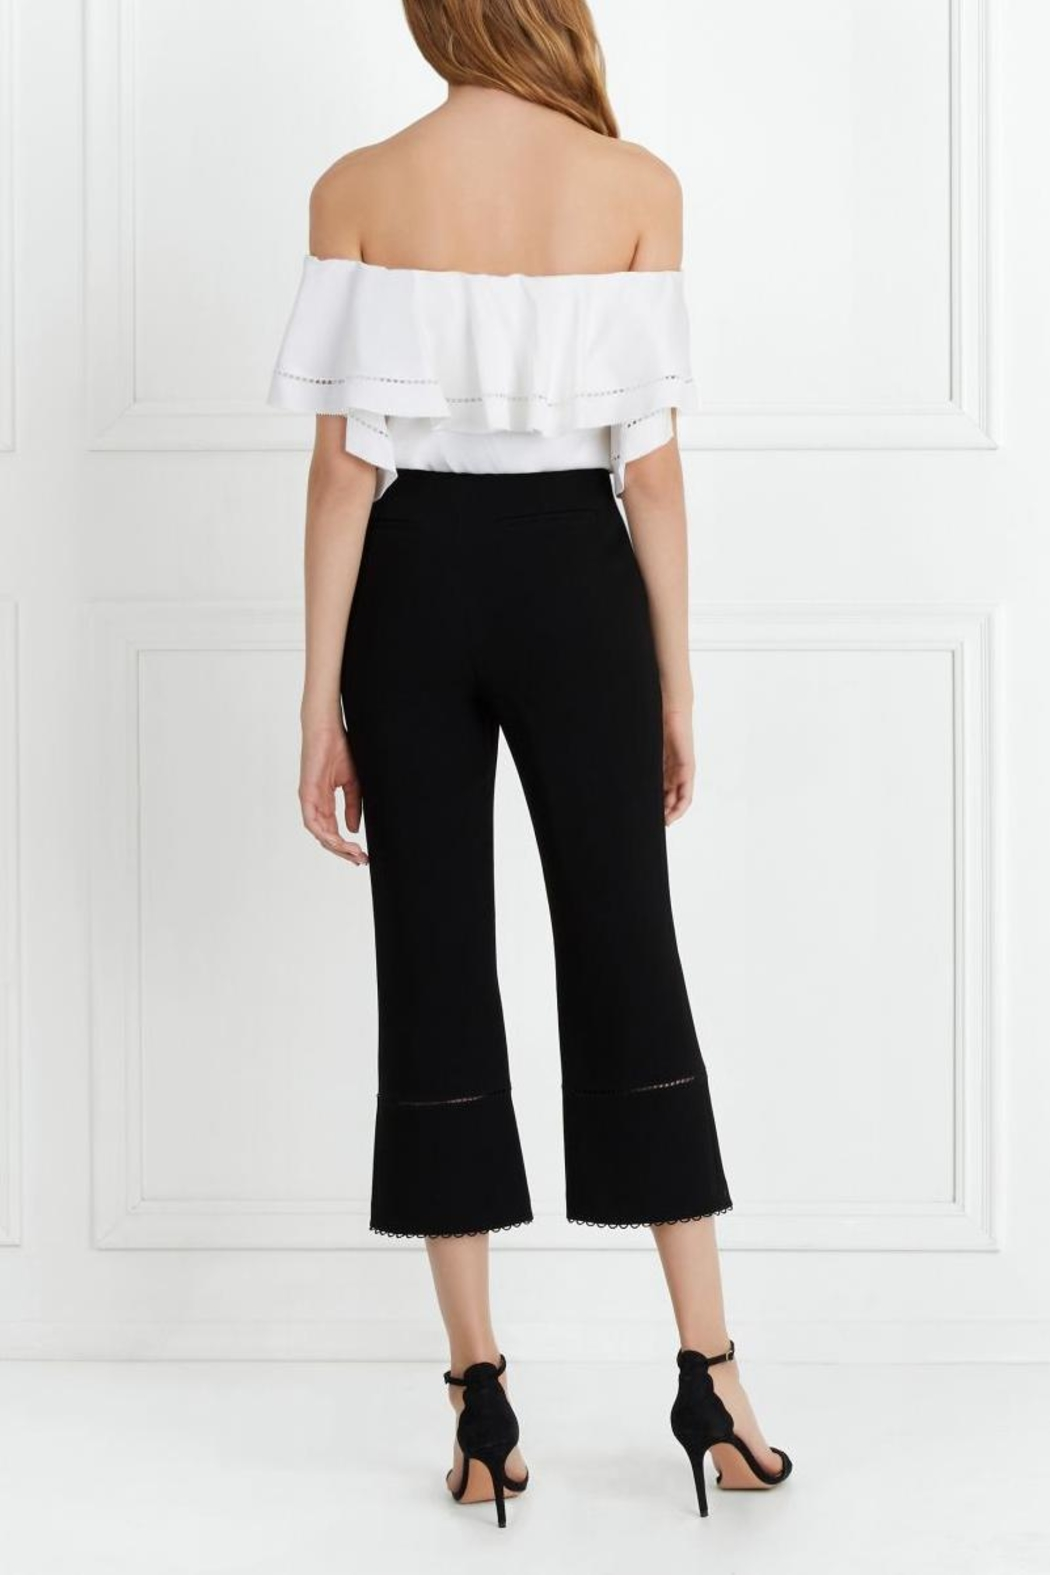 Rachel Zoe Stretch-Crepe Cropped Flare - Side Cropped Image